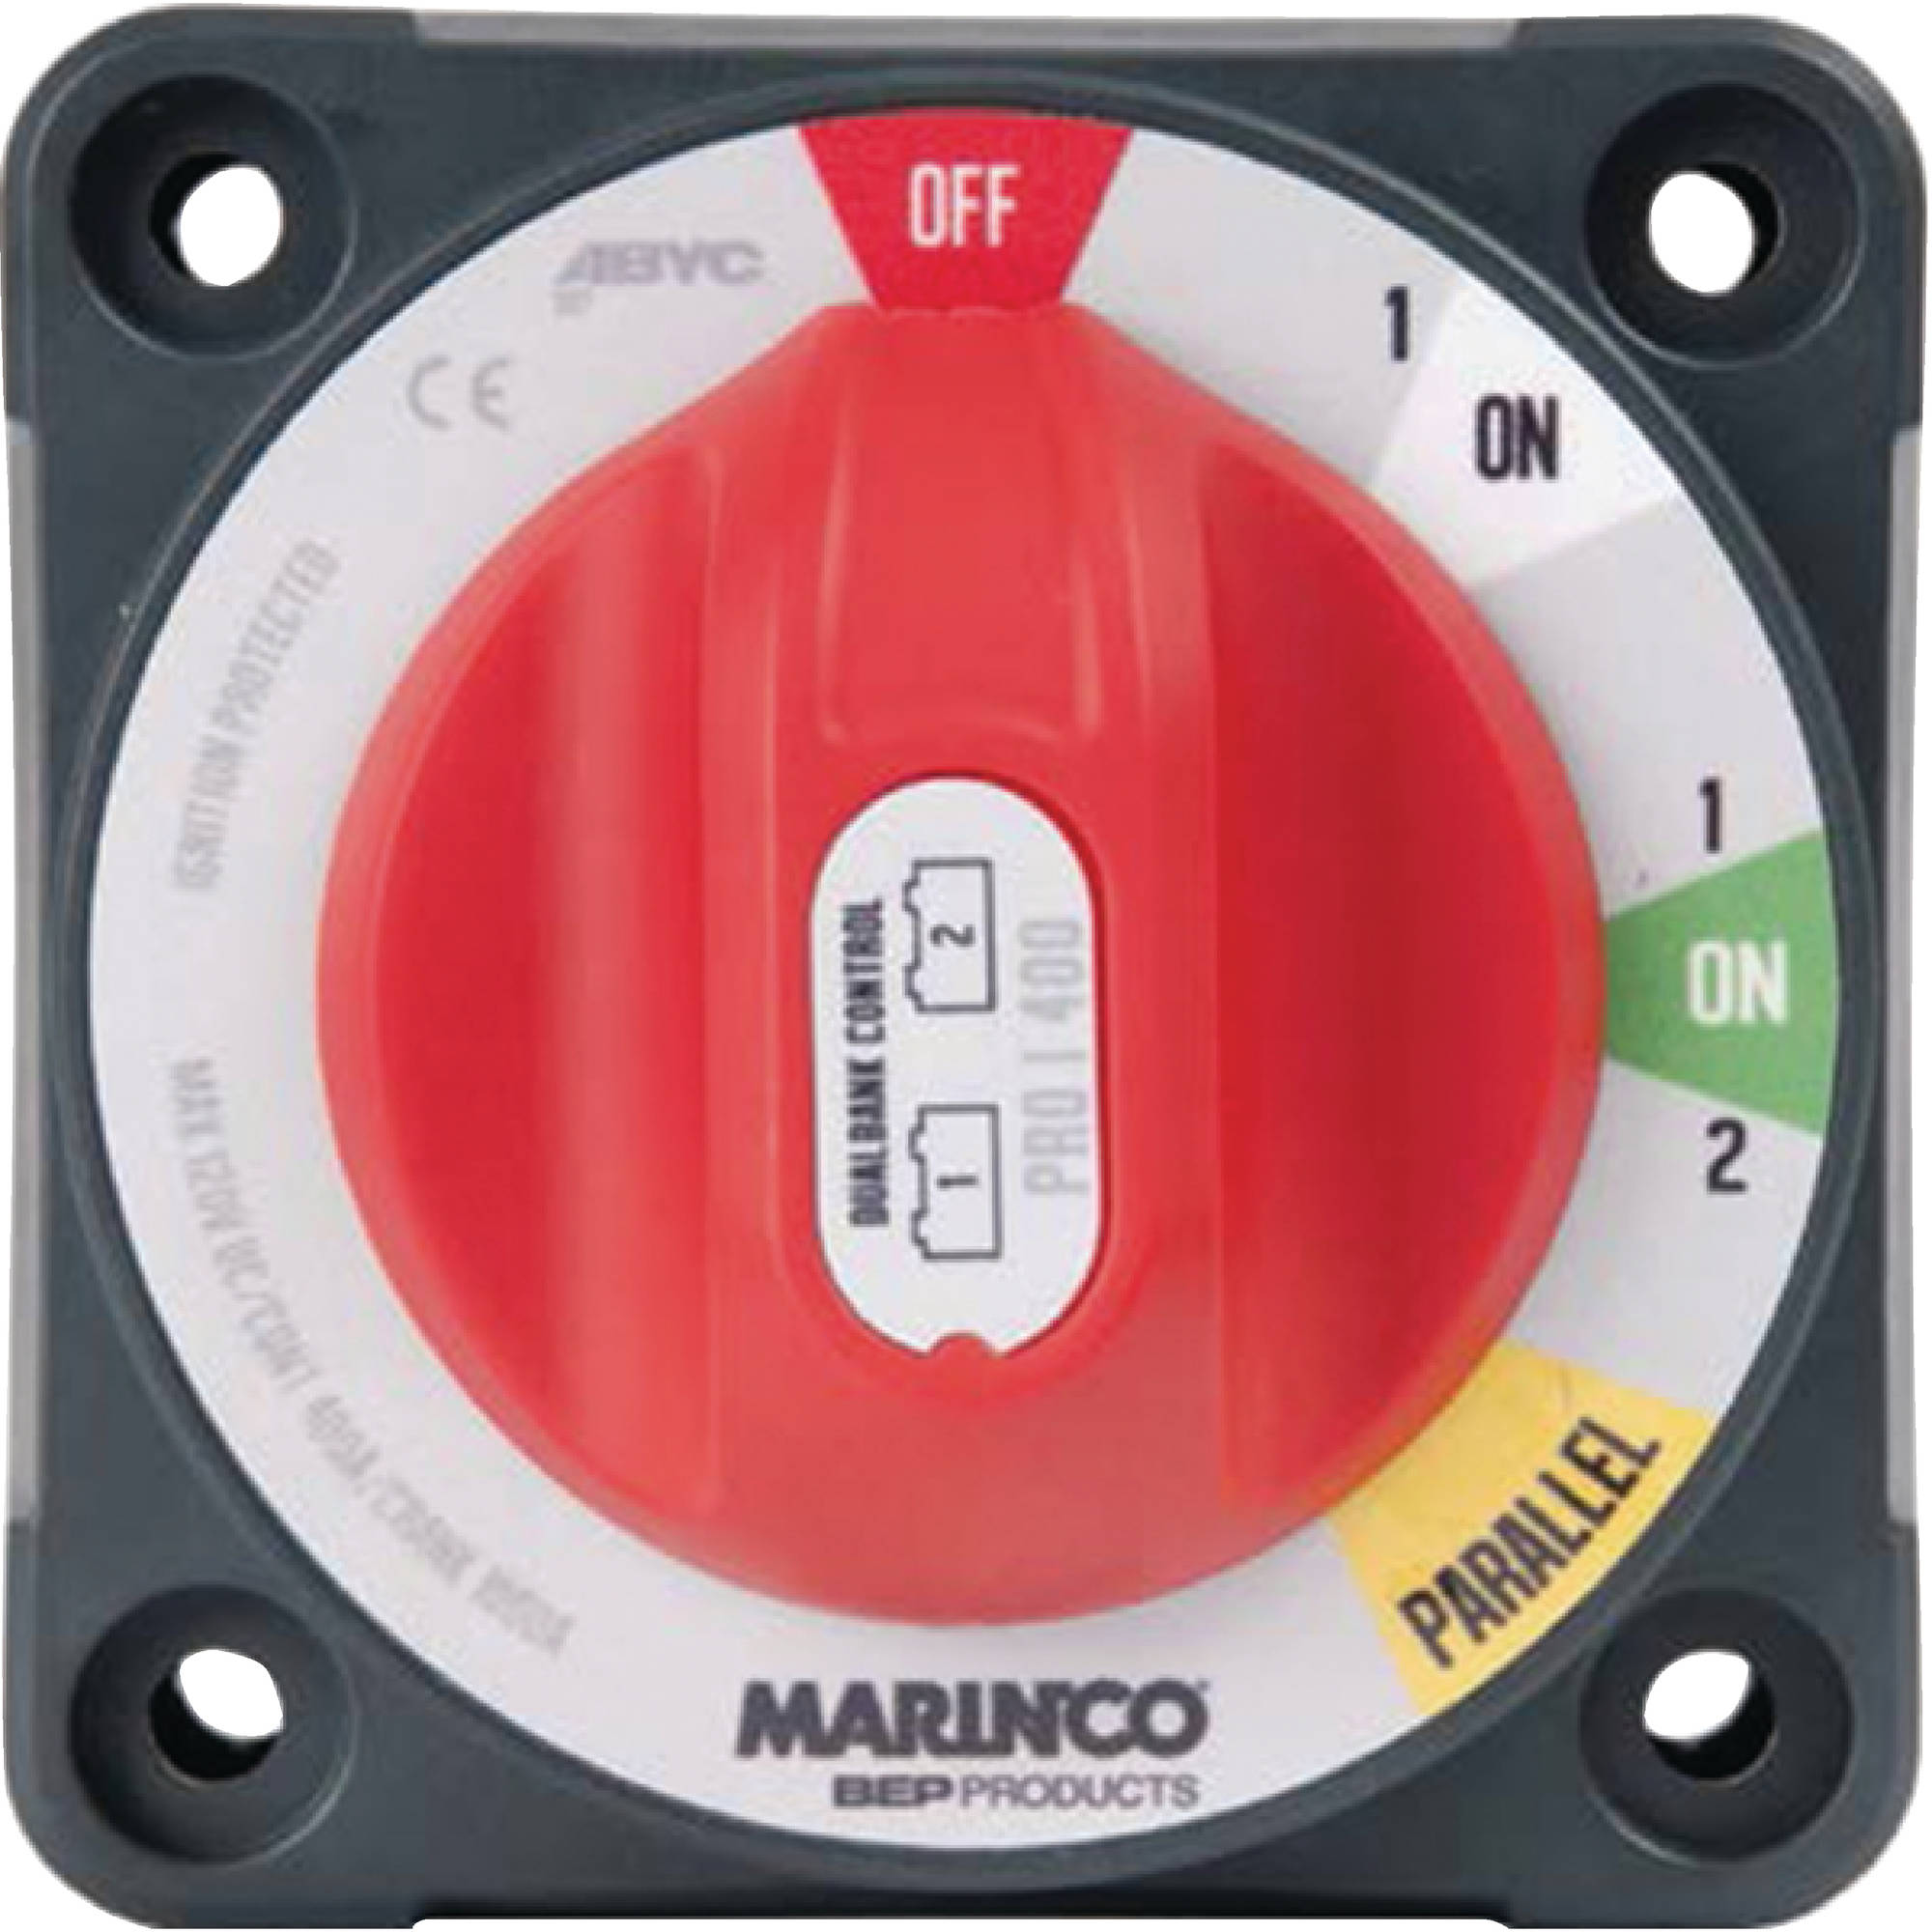 Marinco 772-DBC Pro Installer Dual Bank Control Battery Switch (1,1/2, Parallel, Off)